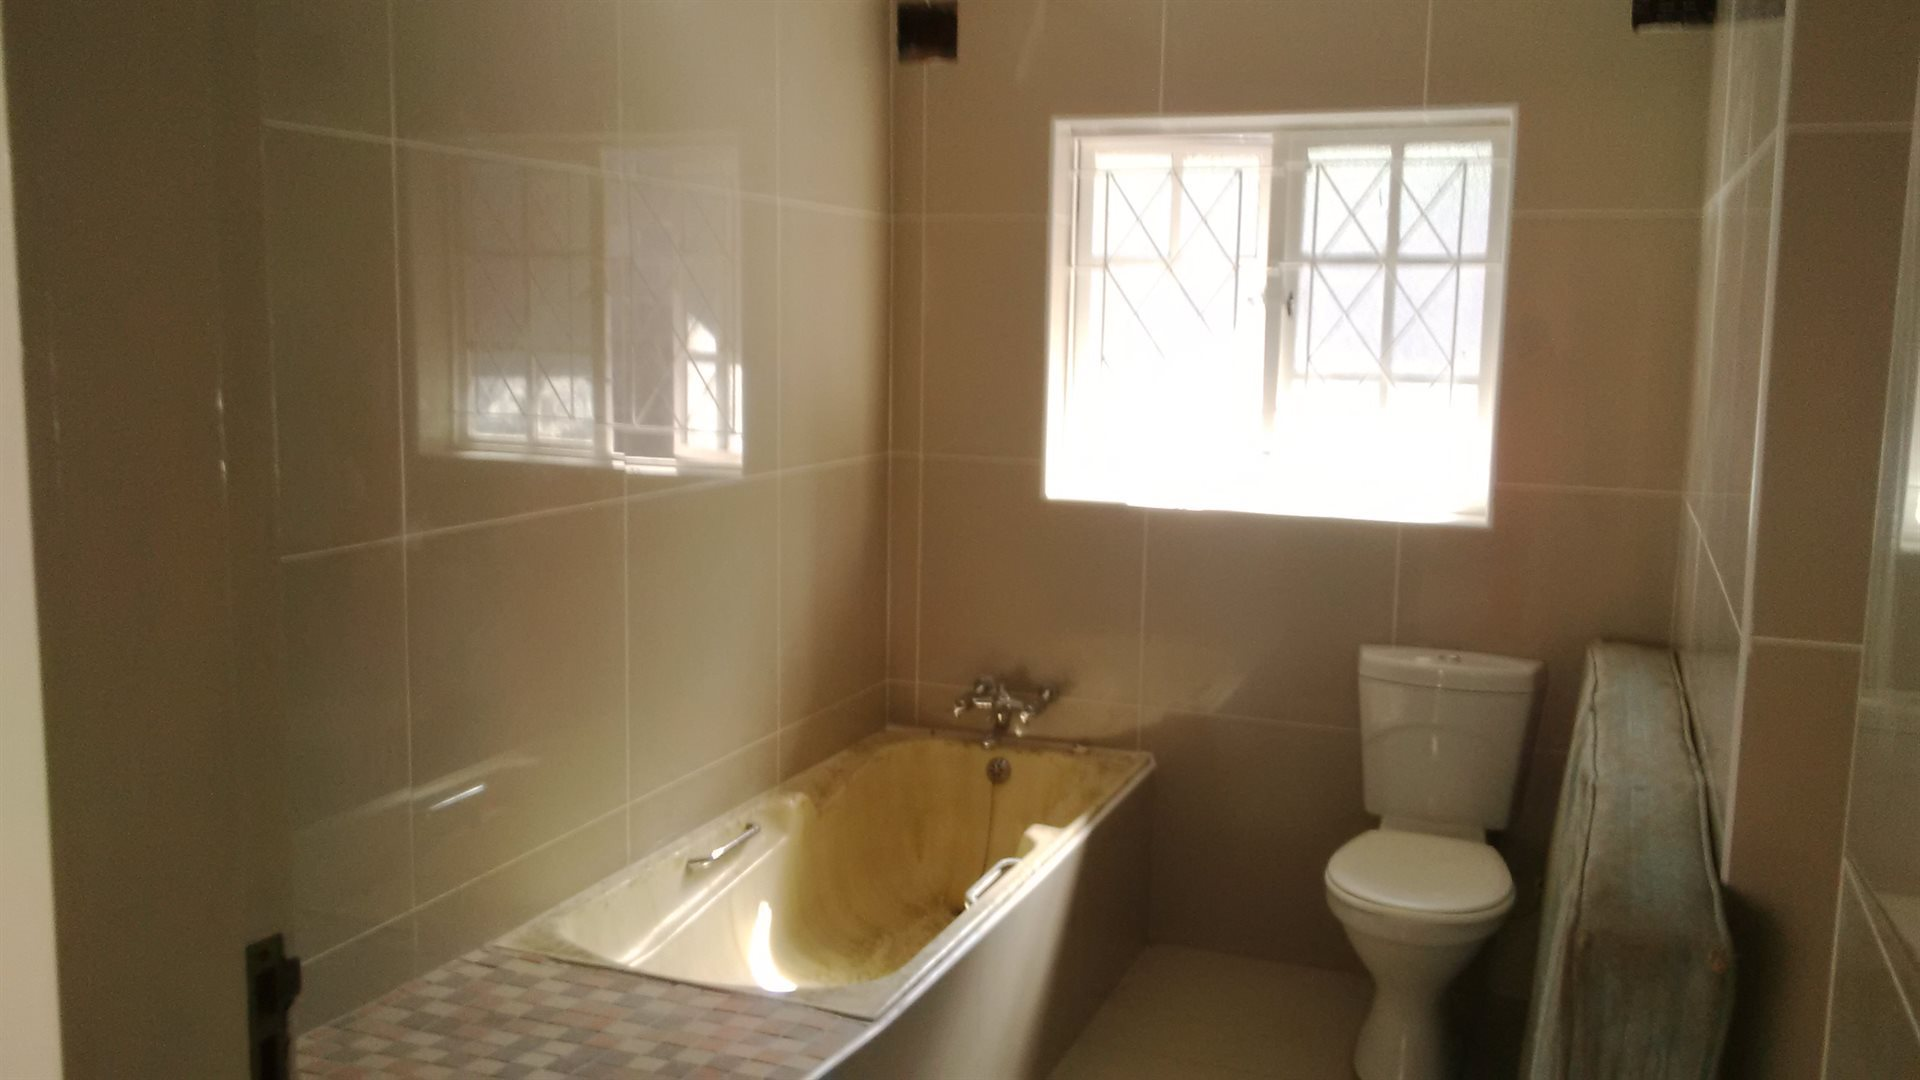 Doonside property for sale. Ref No: 13522465. Picture no 11